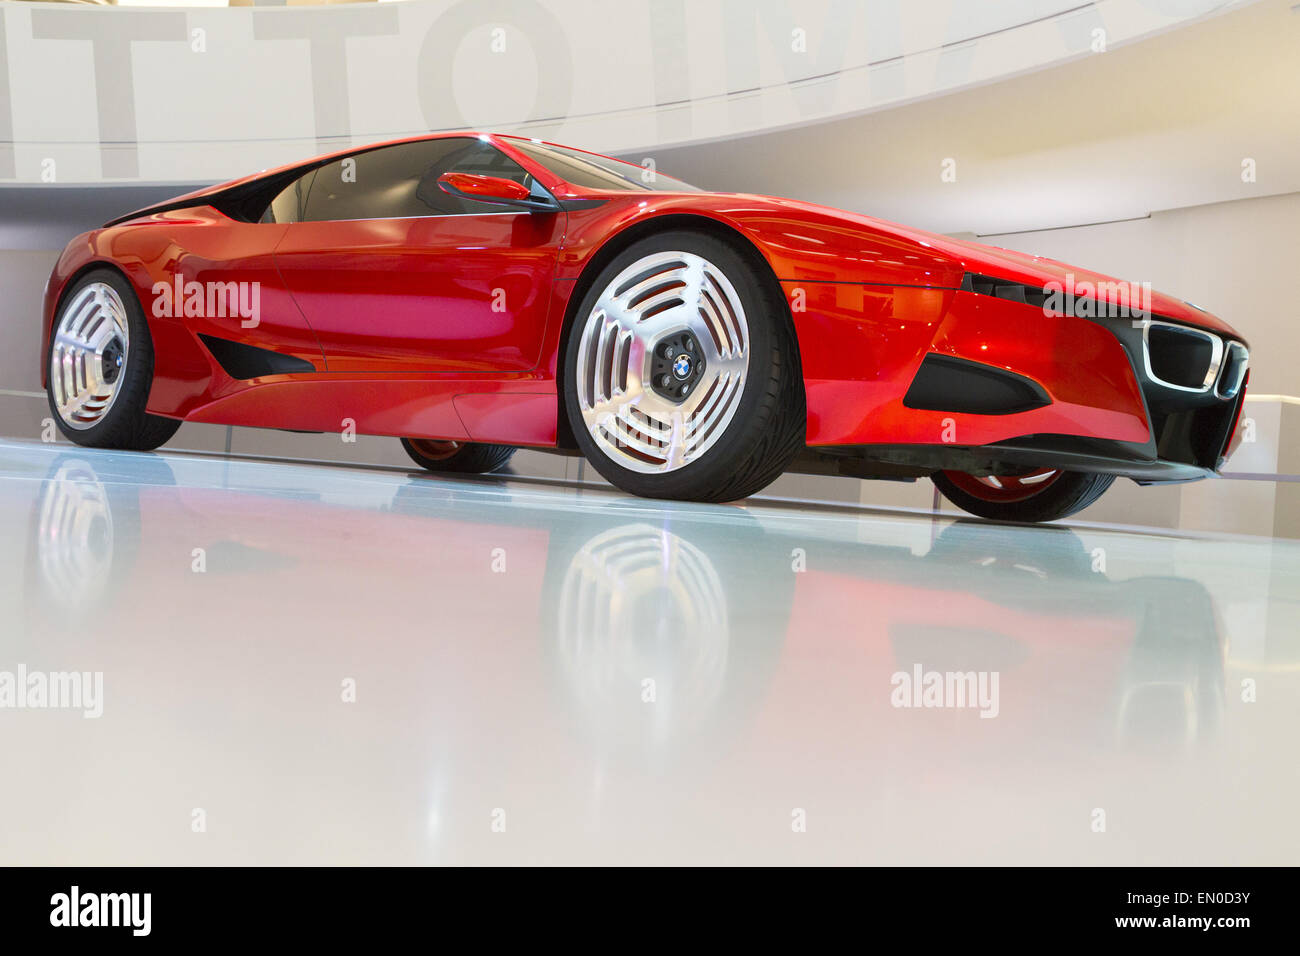 Bmw m1 homage at the bmw museum the m1 homage concept was launched in april